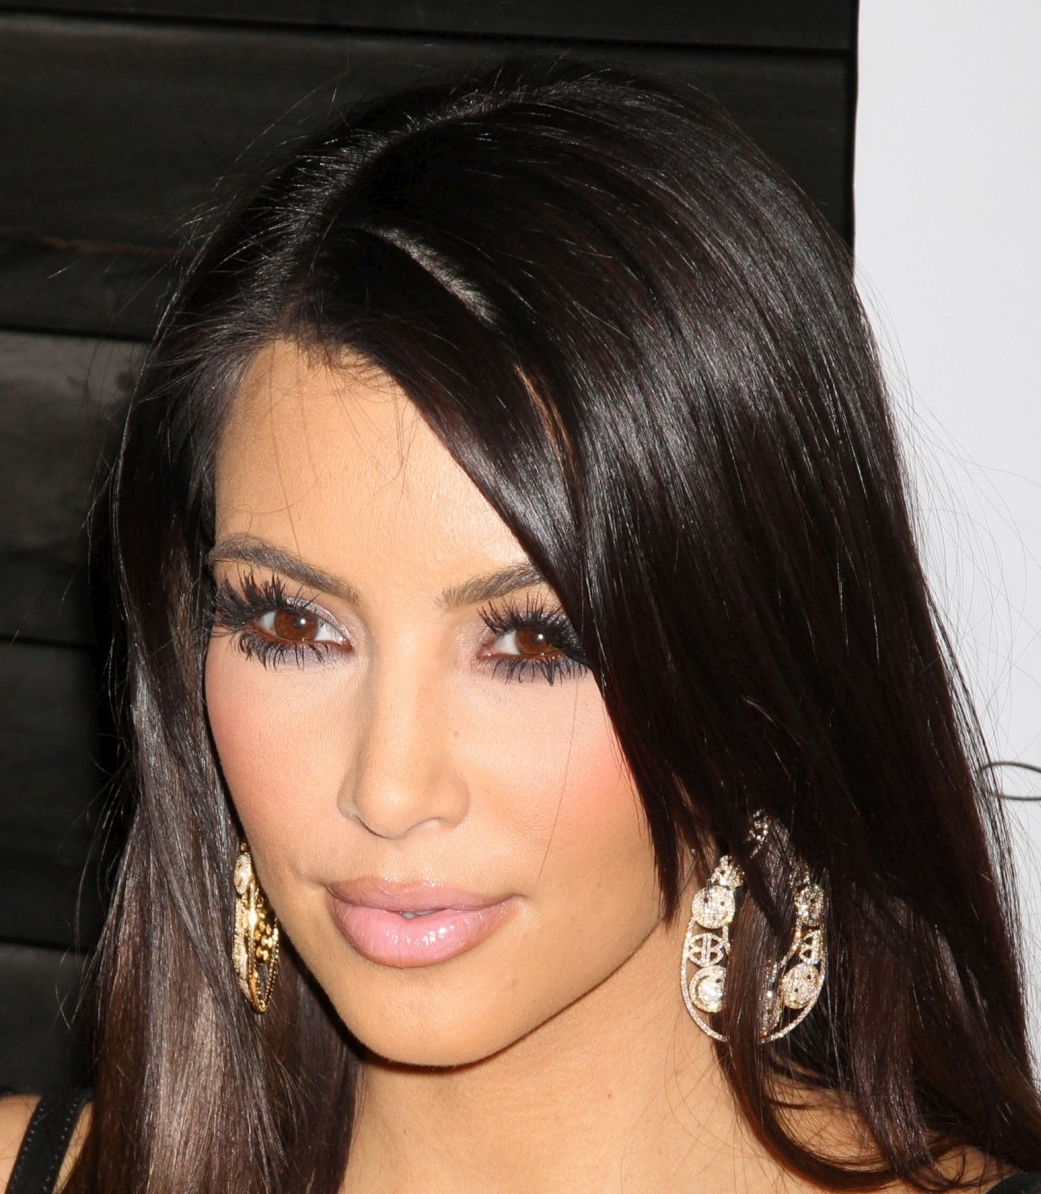 Kim-Kardashian-with-and-without makeup